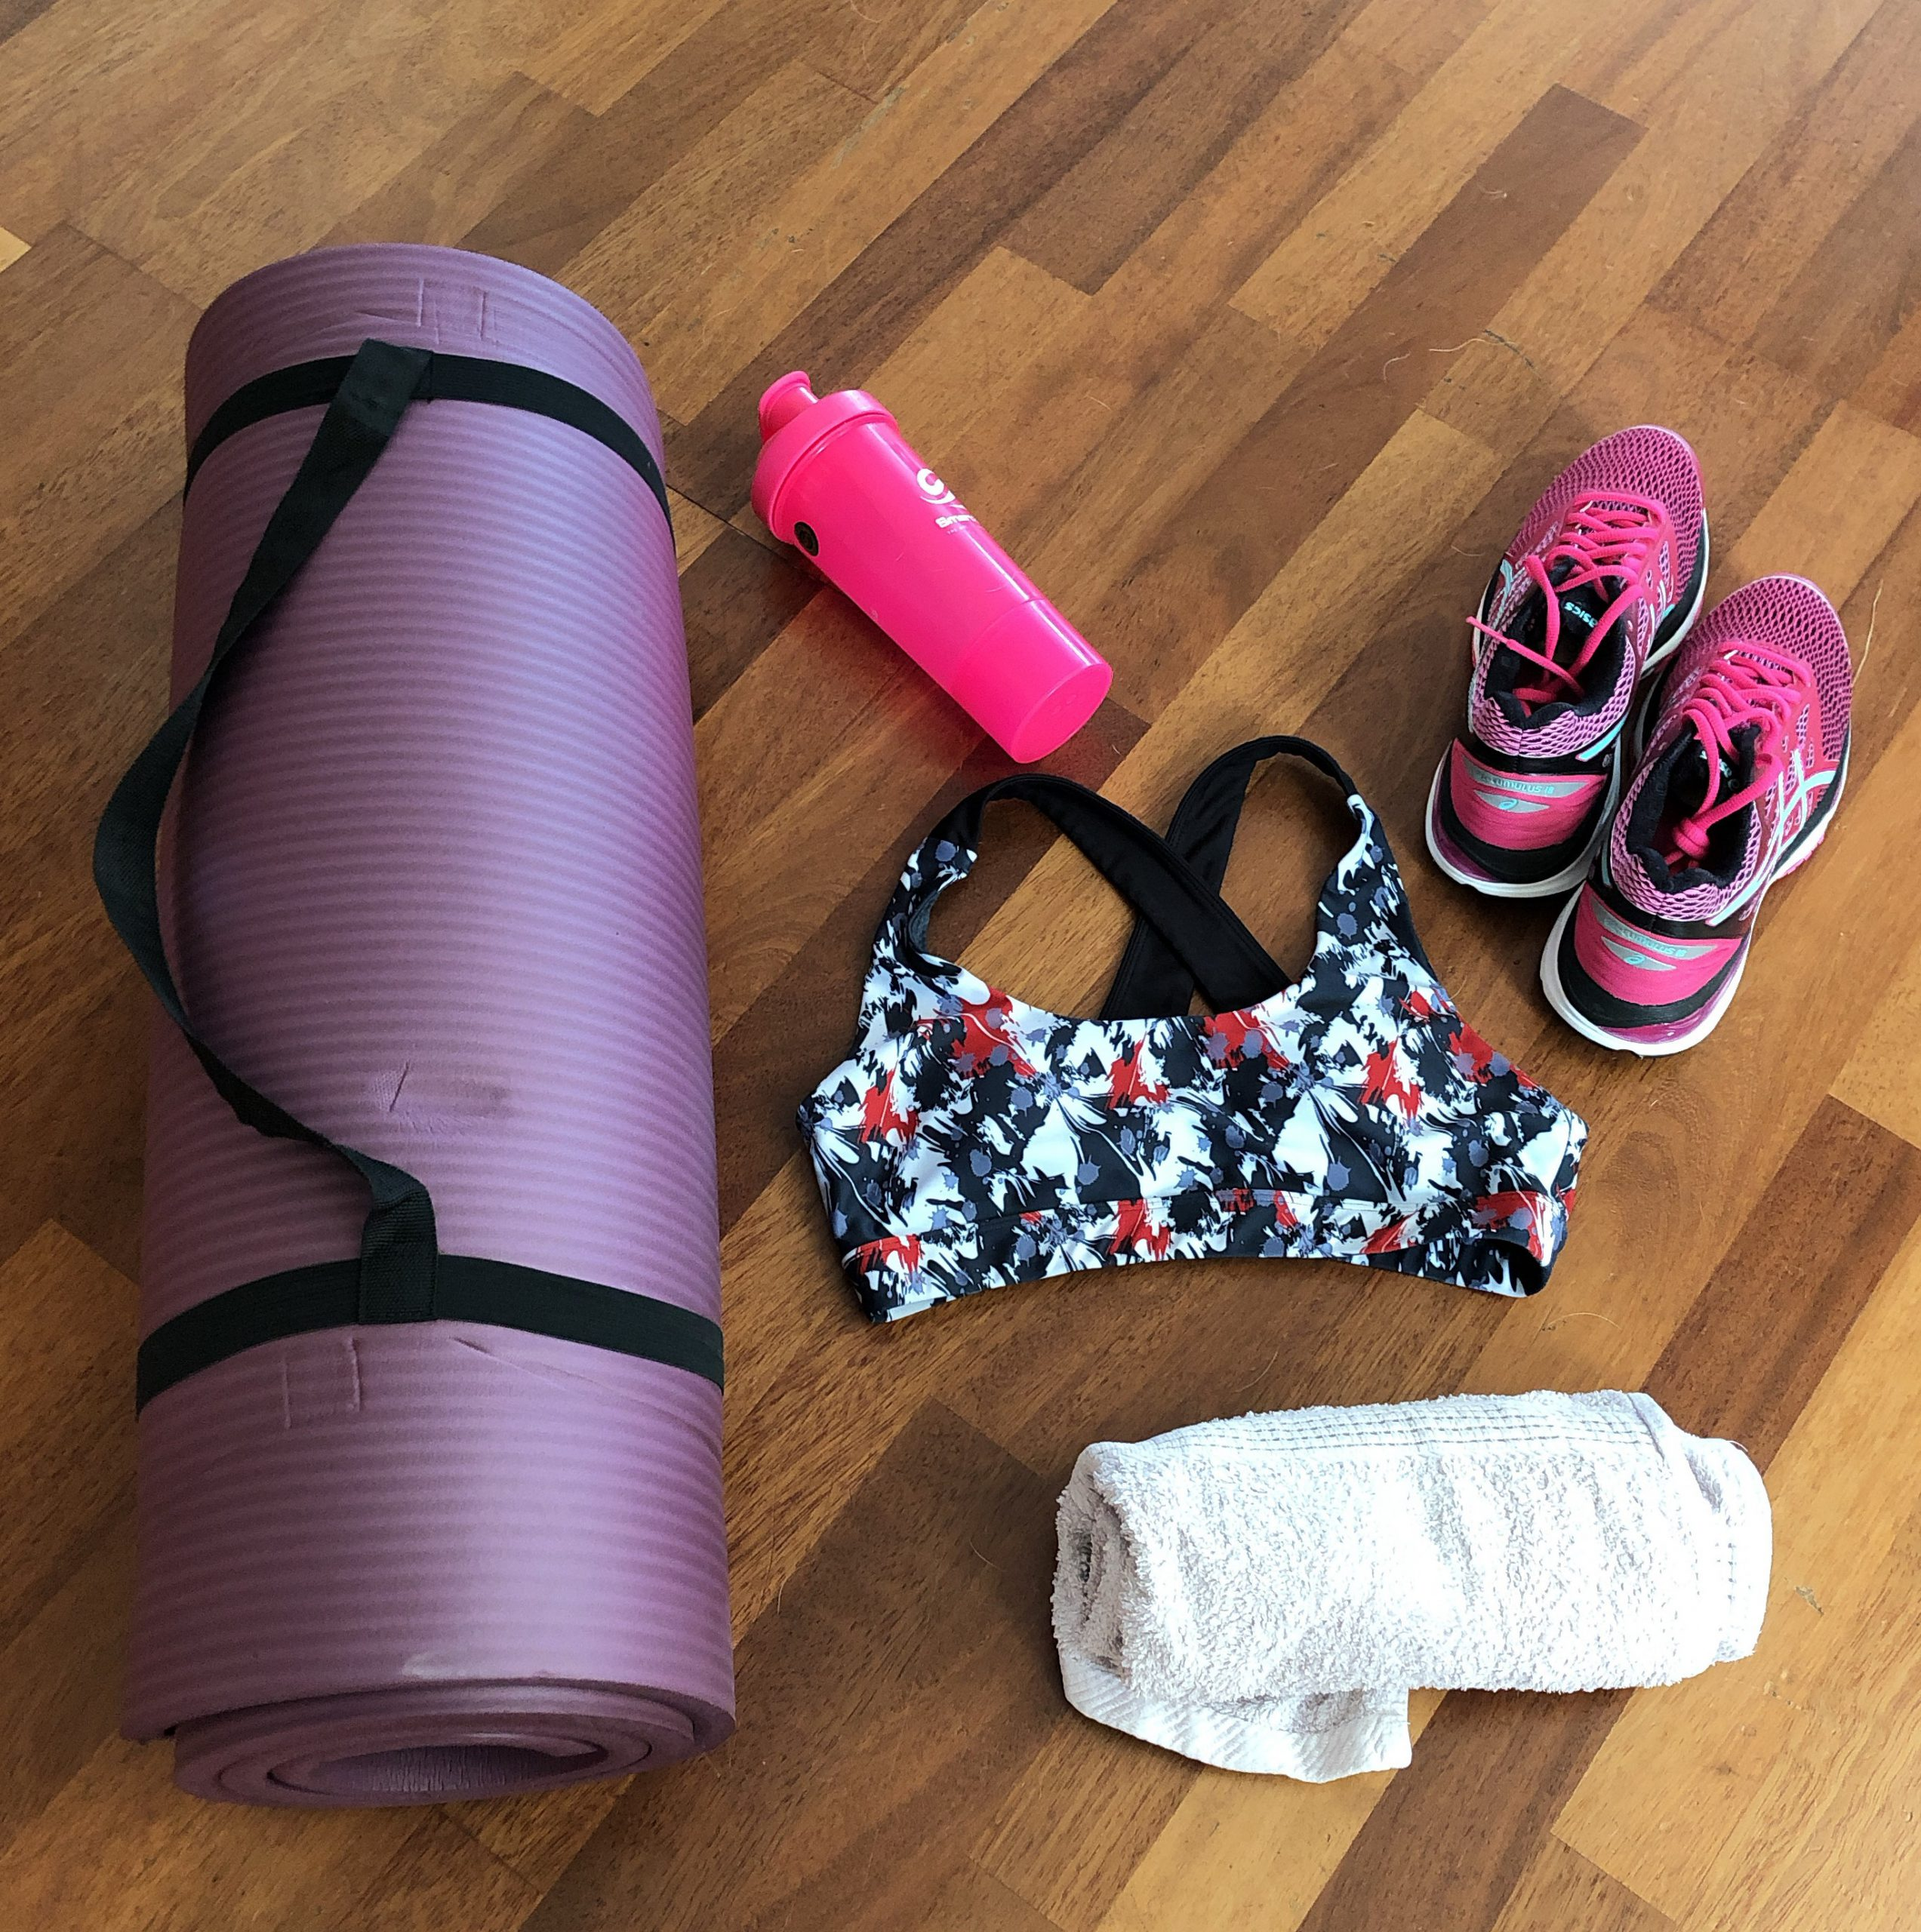 Free workouts at home from WOBUK